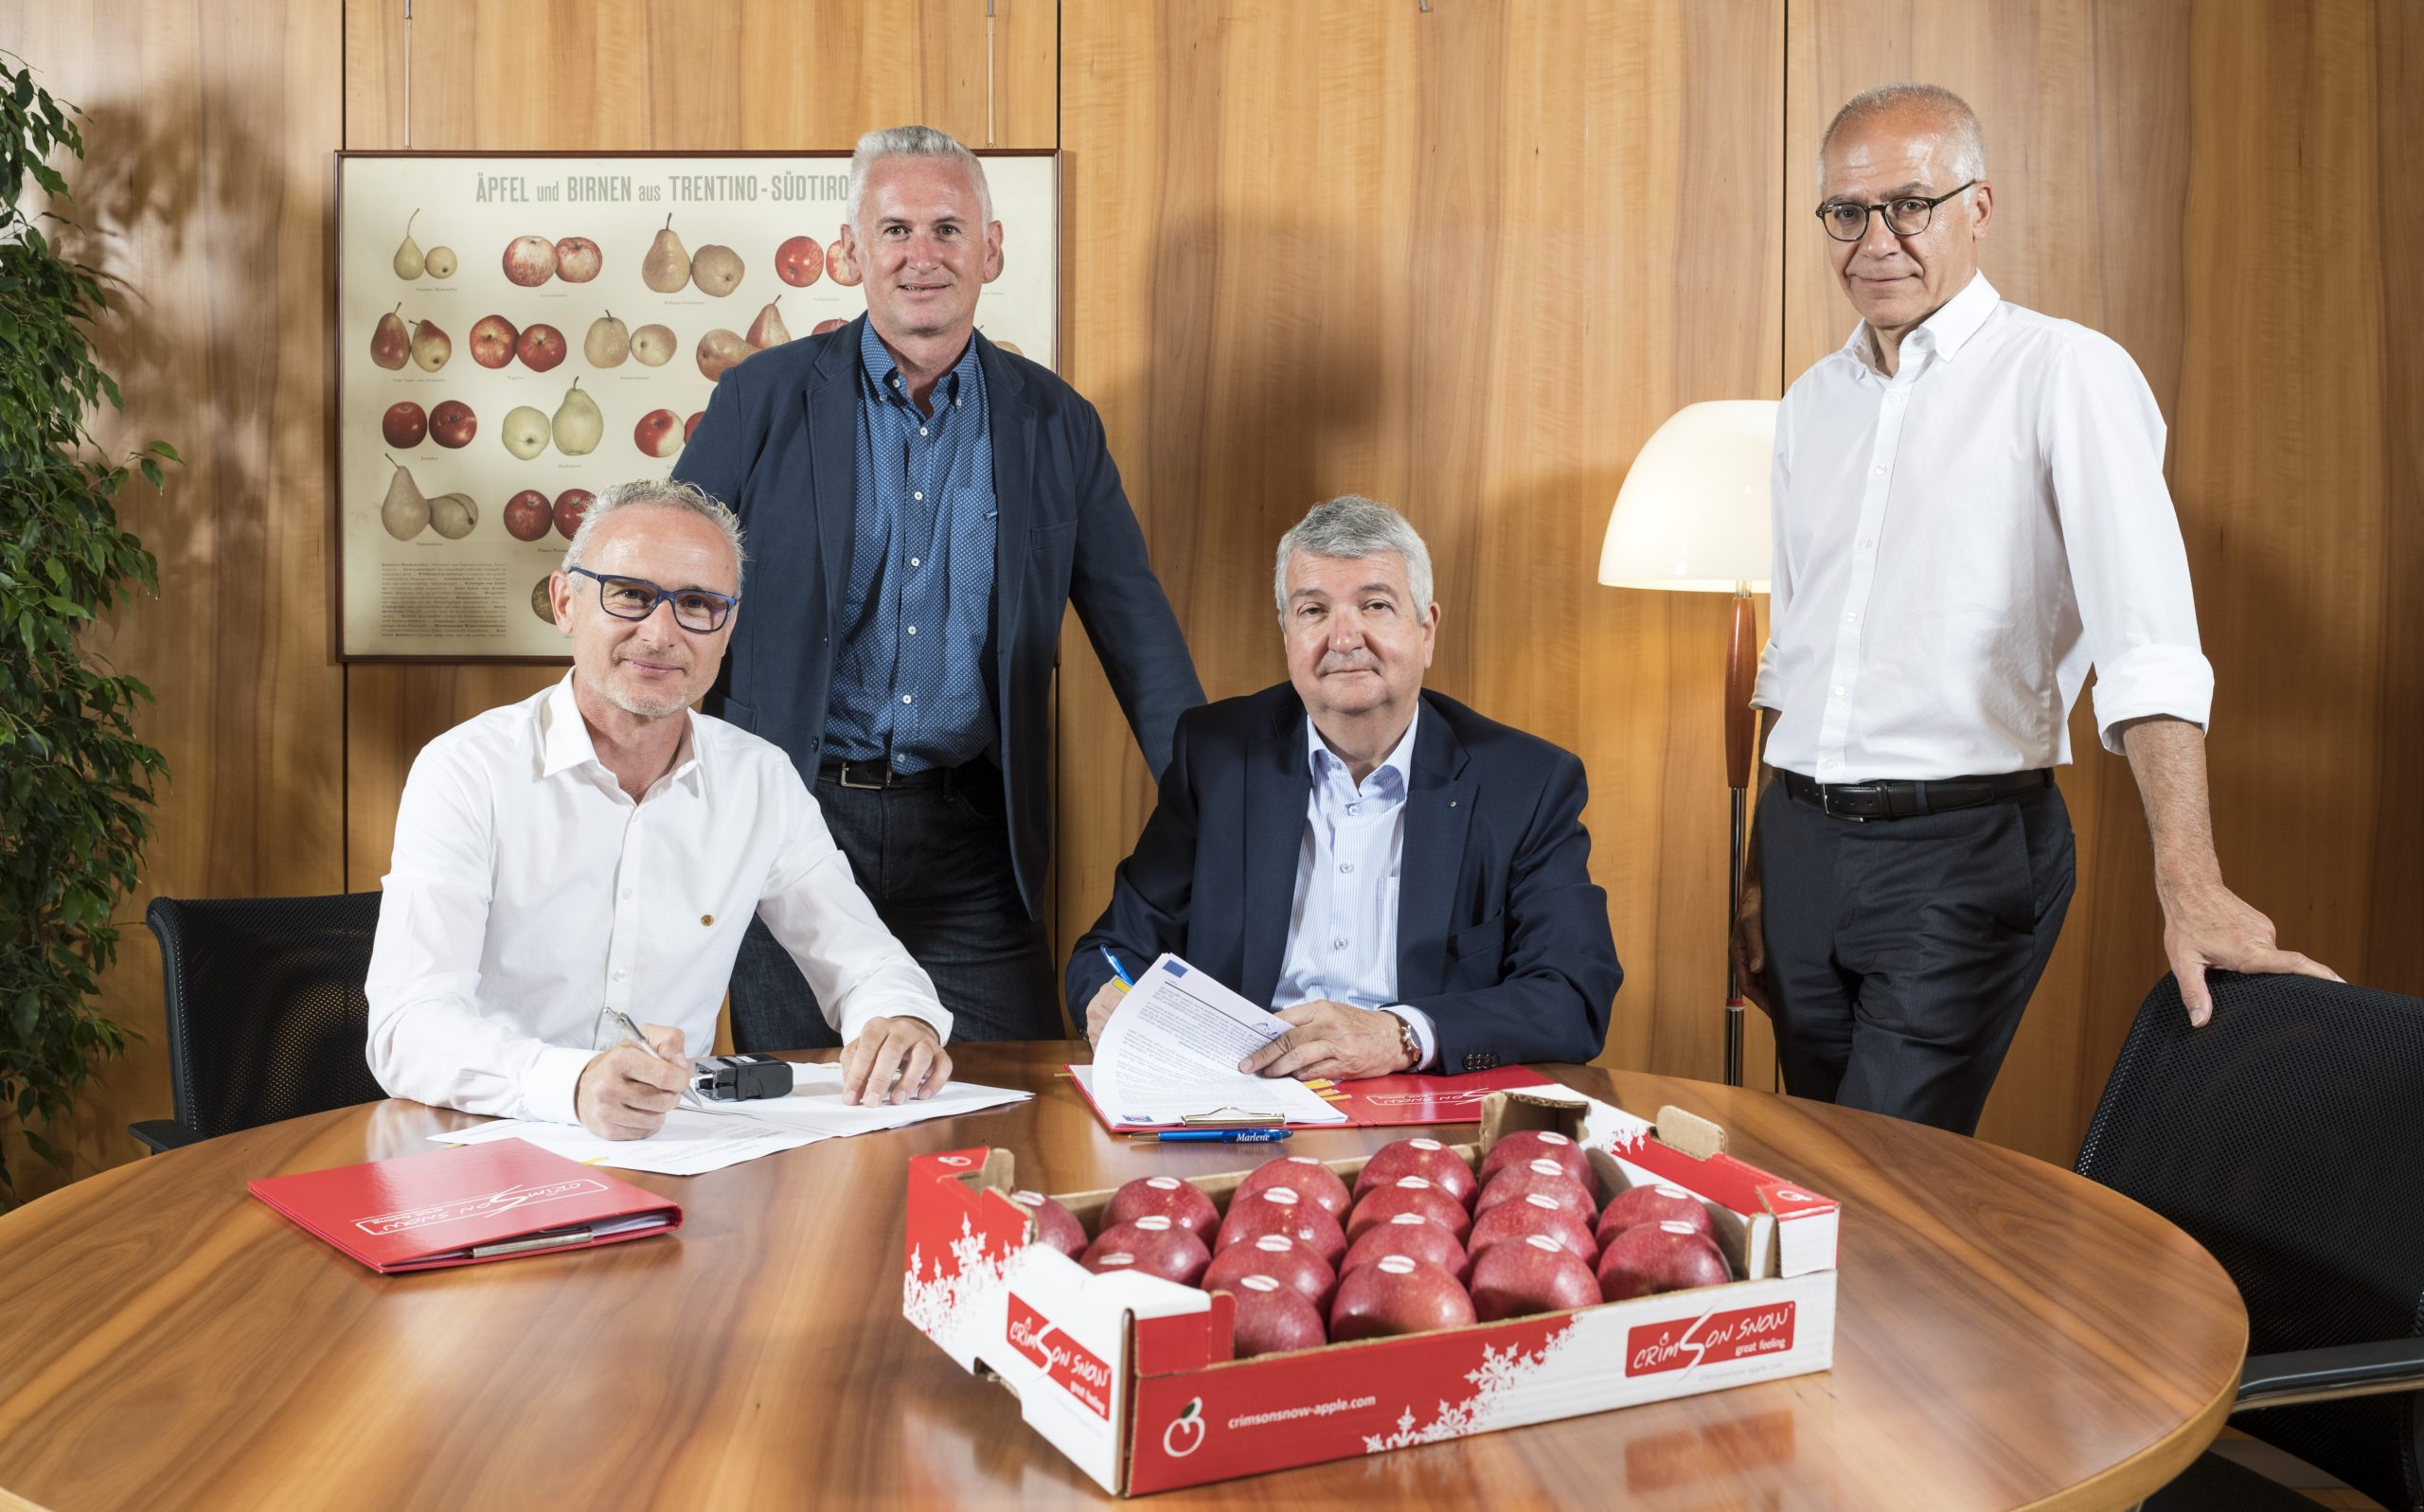 A new Club apple is to be added to the assortment offered by the Italian apple Consortium, VOG, which from 2020 will be planting trees to produce Crimson Snow®, which has crimson skin and white flesh.